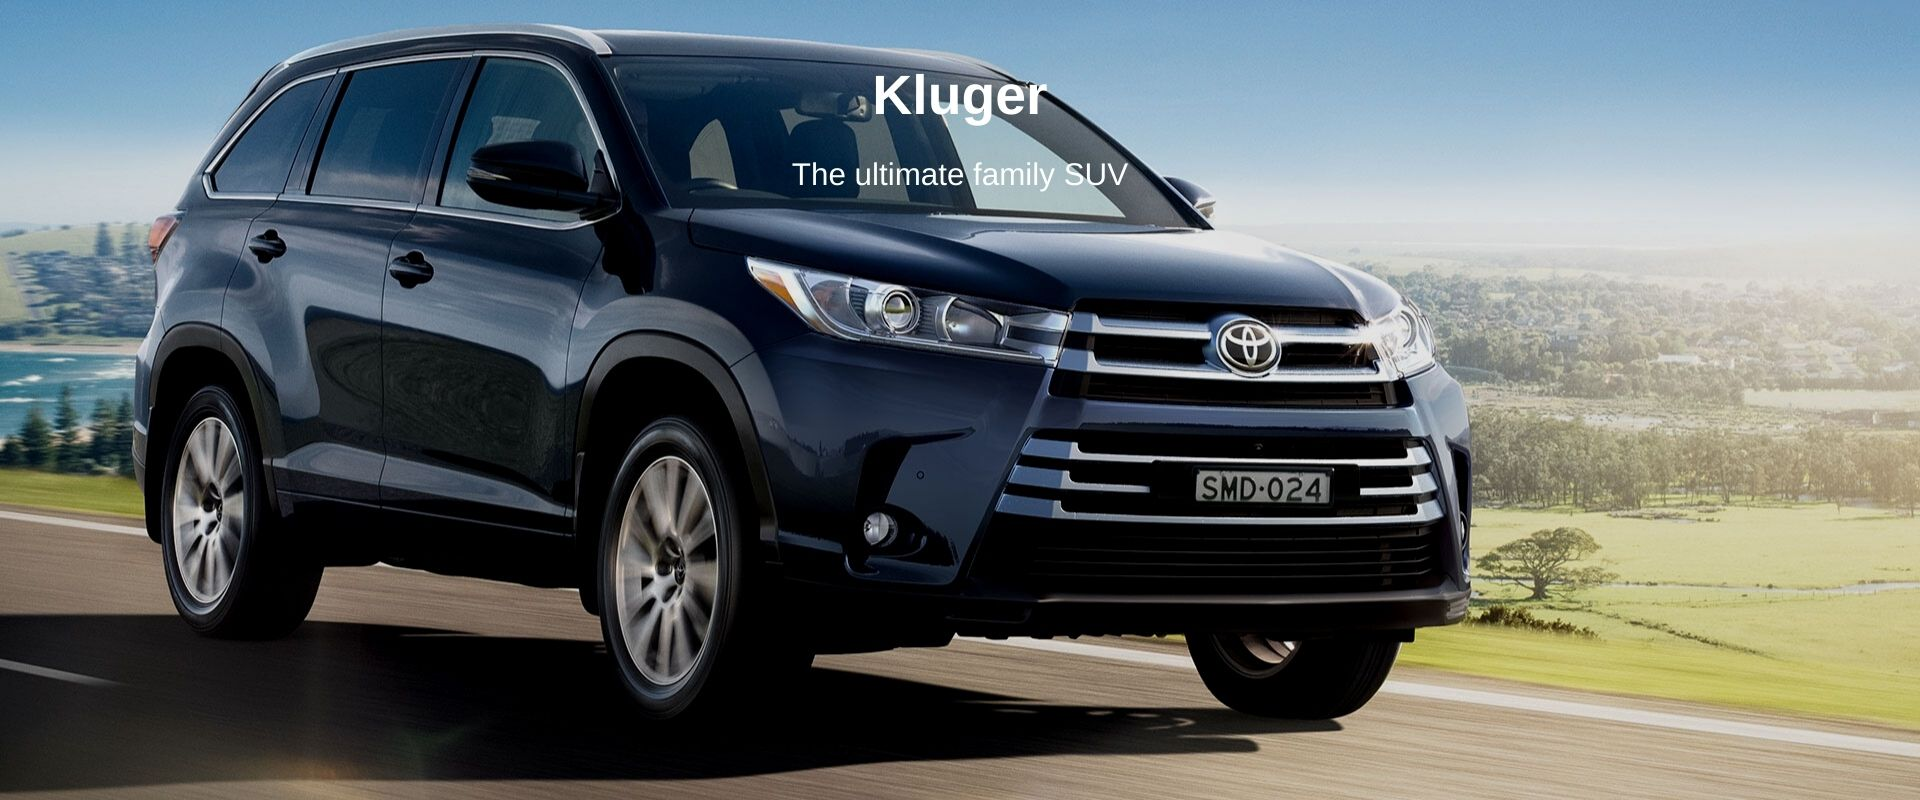 Toyota Kluger. The ultimate family SUV